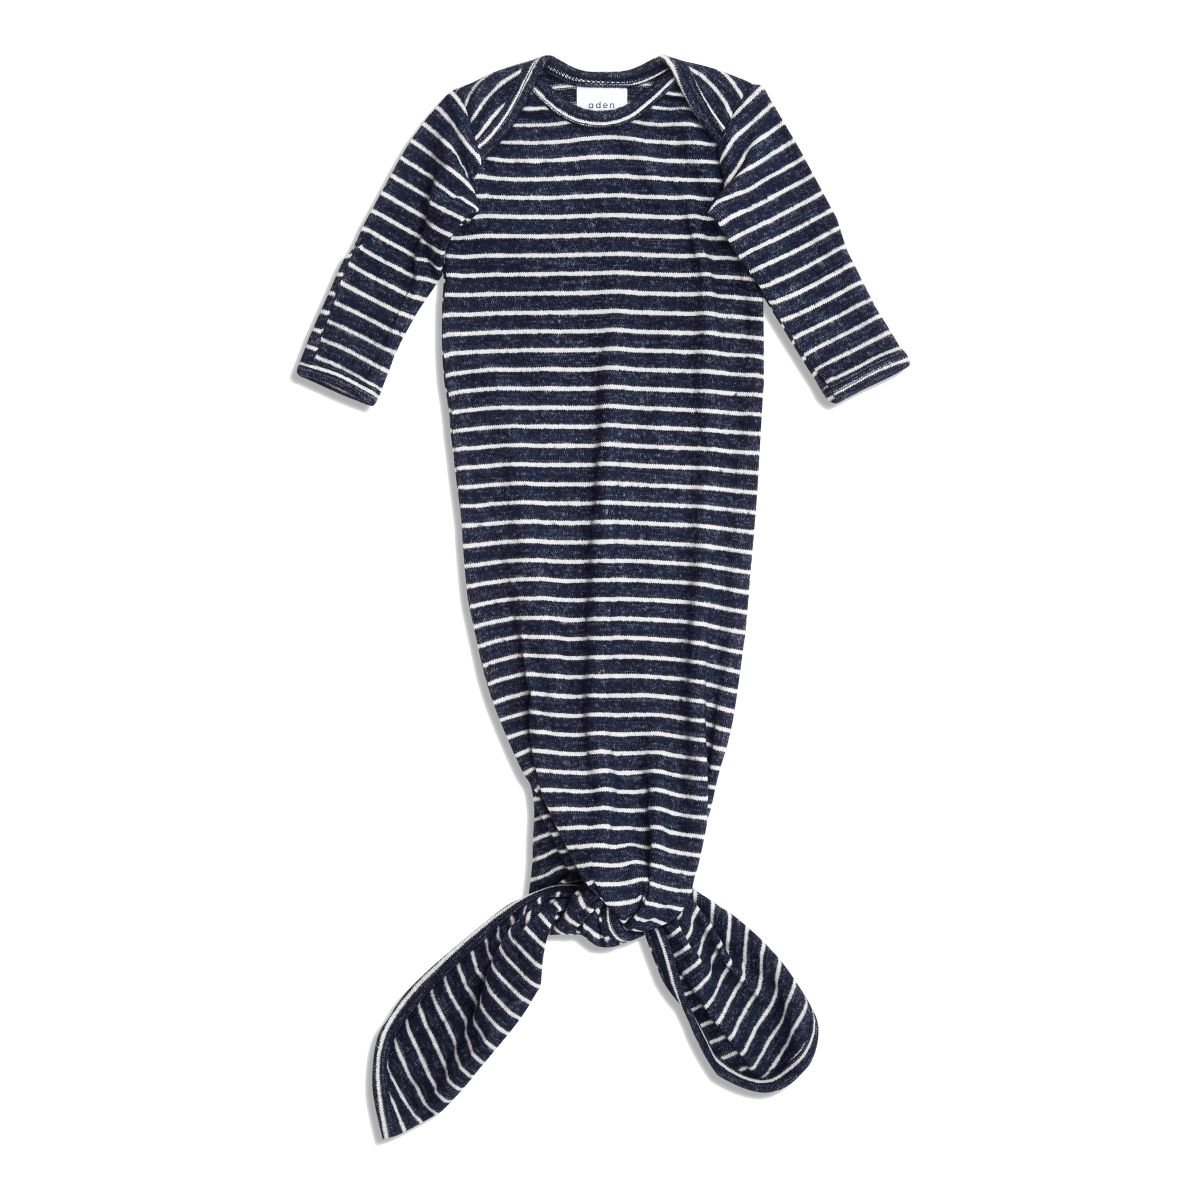 Schlafkleid Snuggle Knit 'Navy Stripe' 0-3 Monate